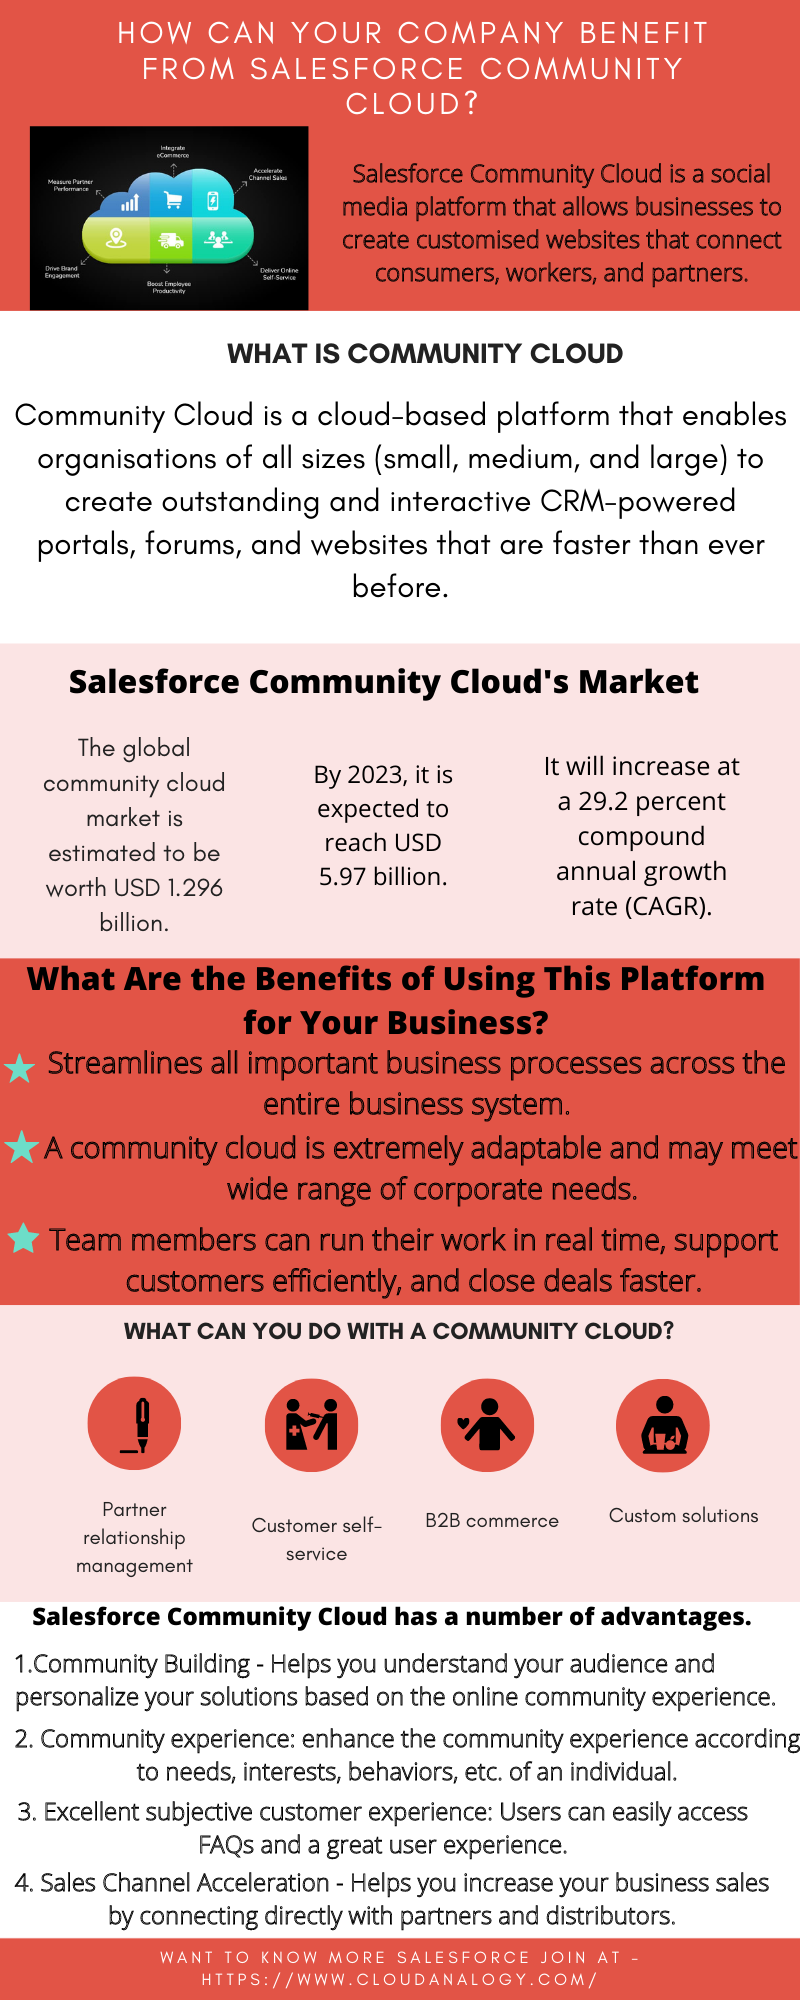 How Can Your Company Benefit from Salesforce Community Cloud